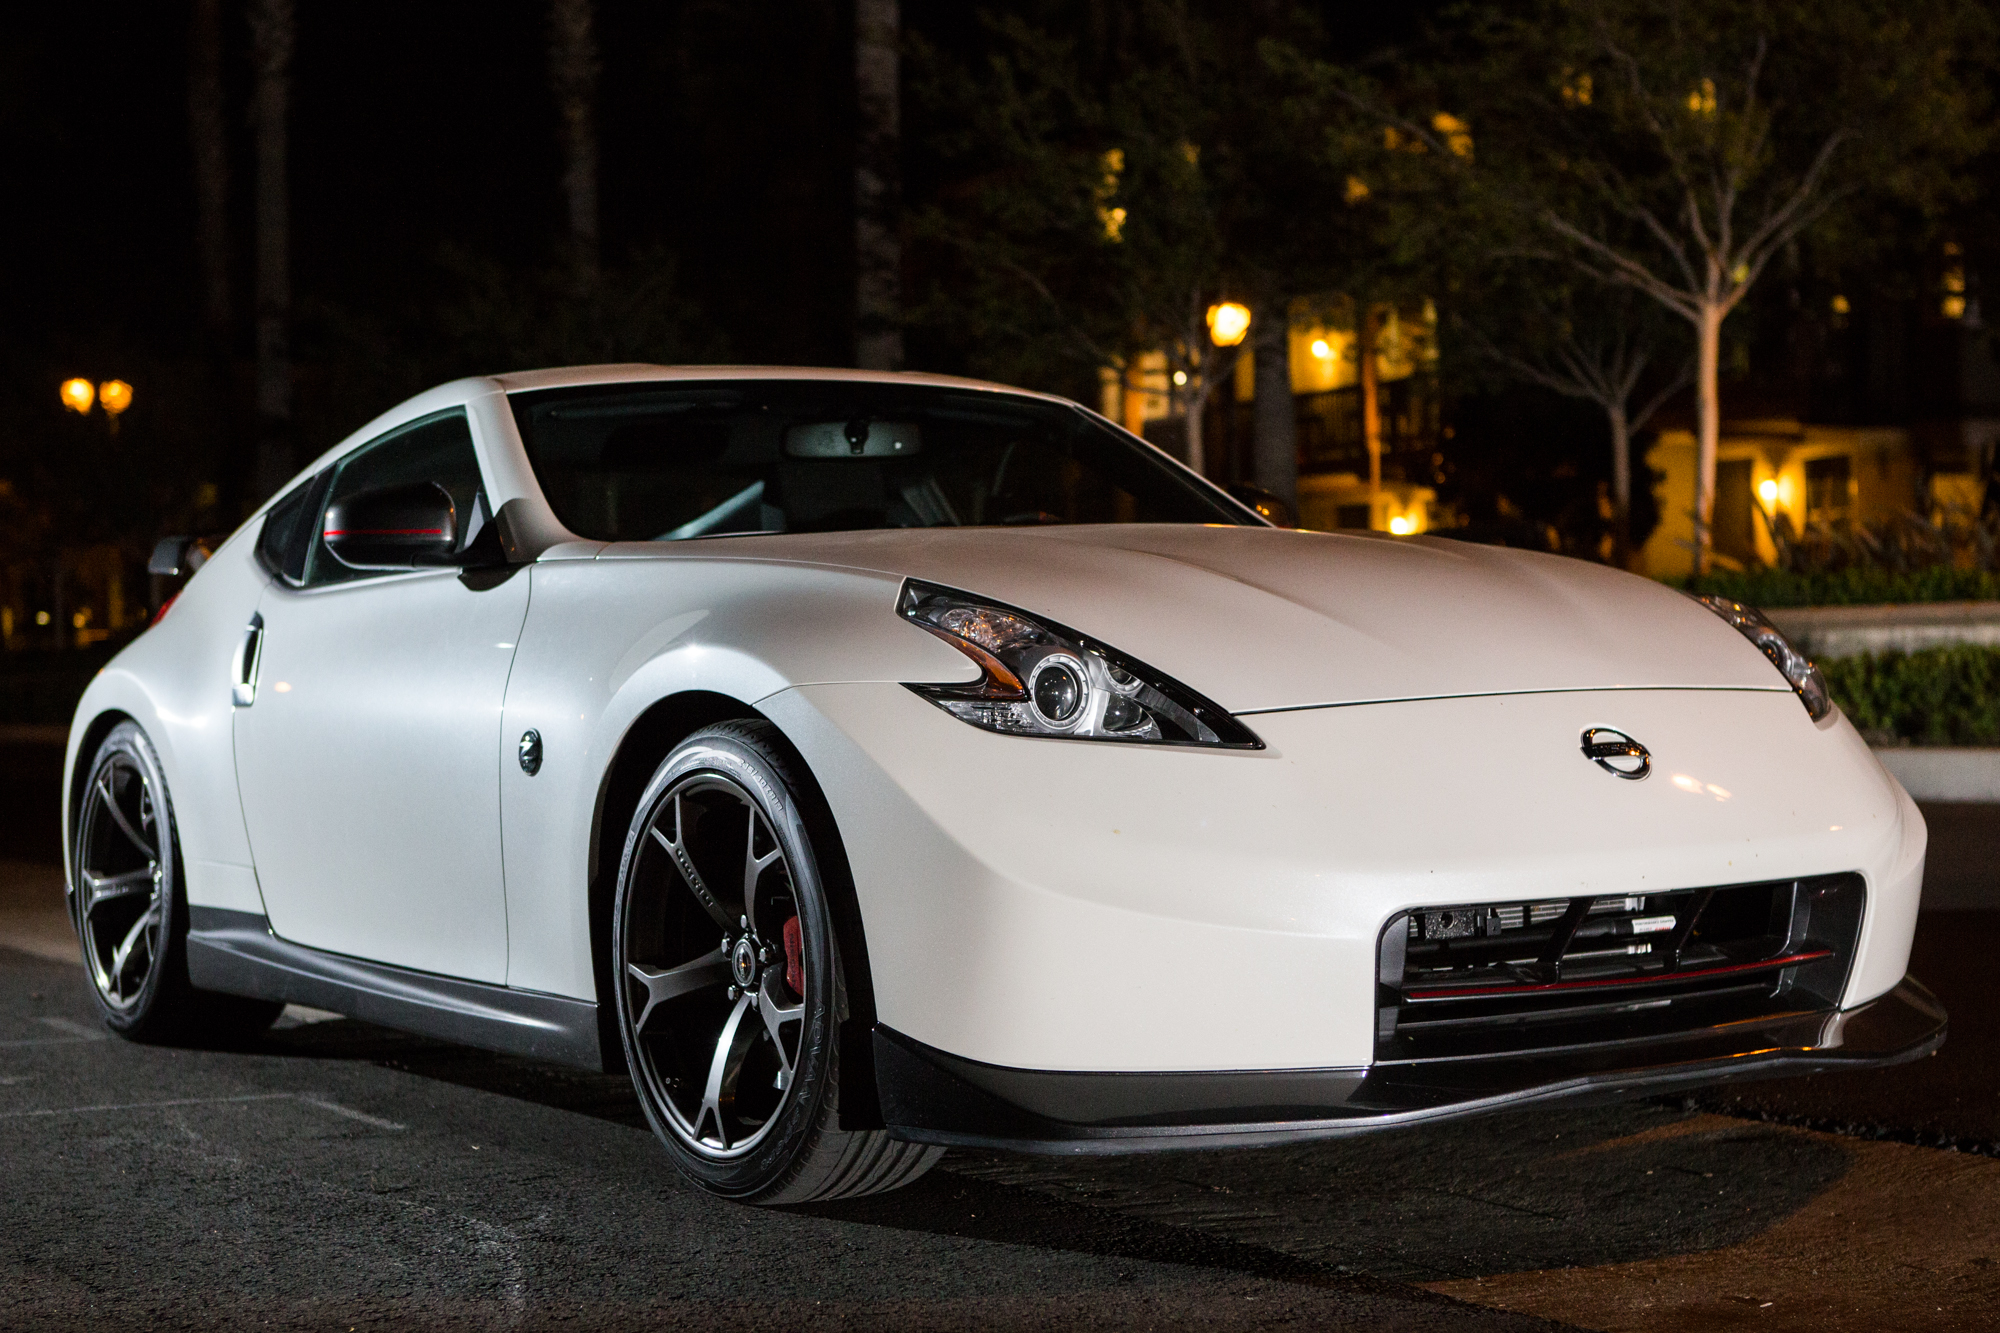 2014 Nissan White Nismo 370z 002 The Ignition Blog